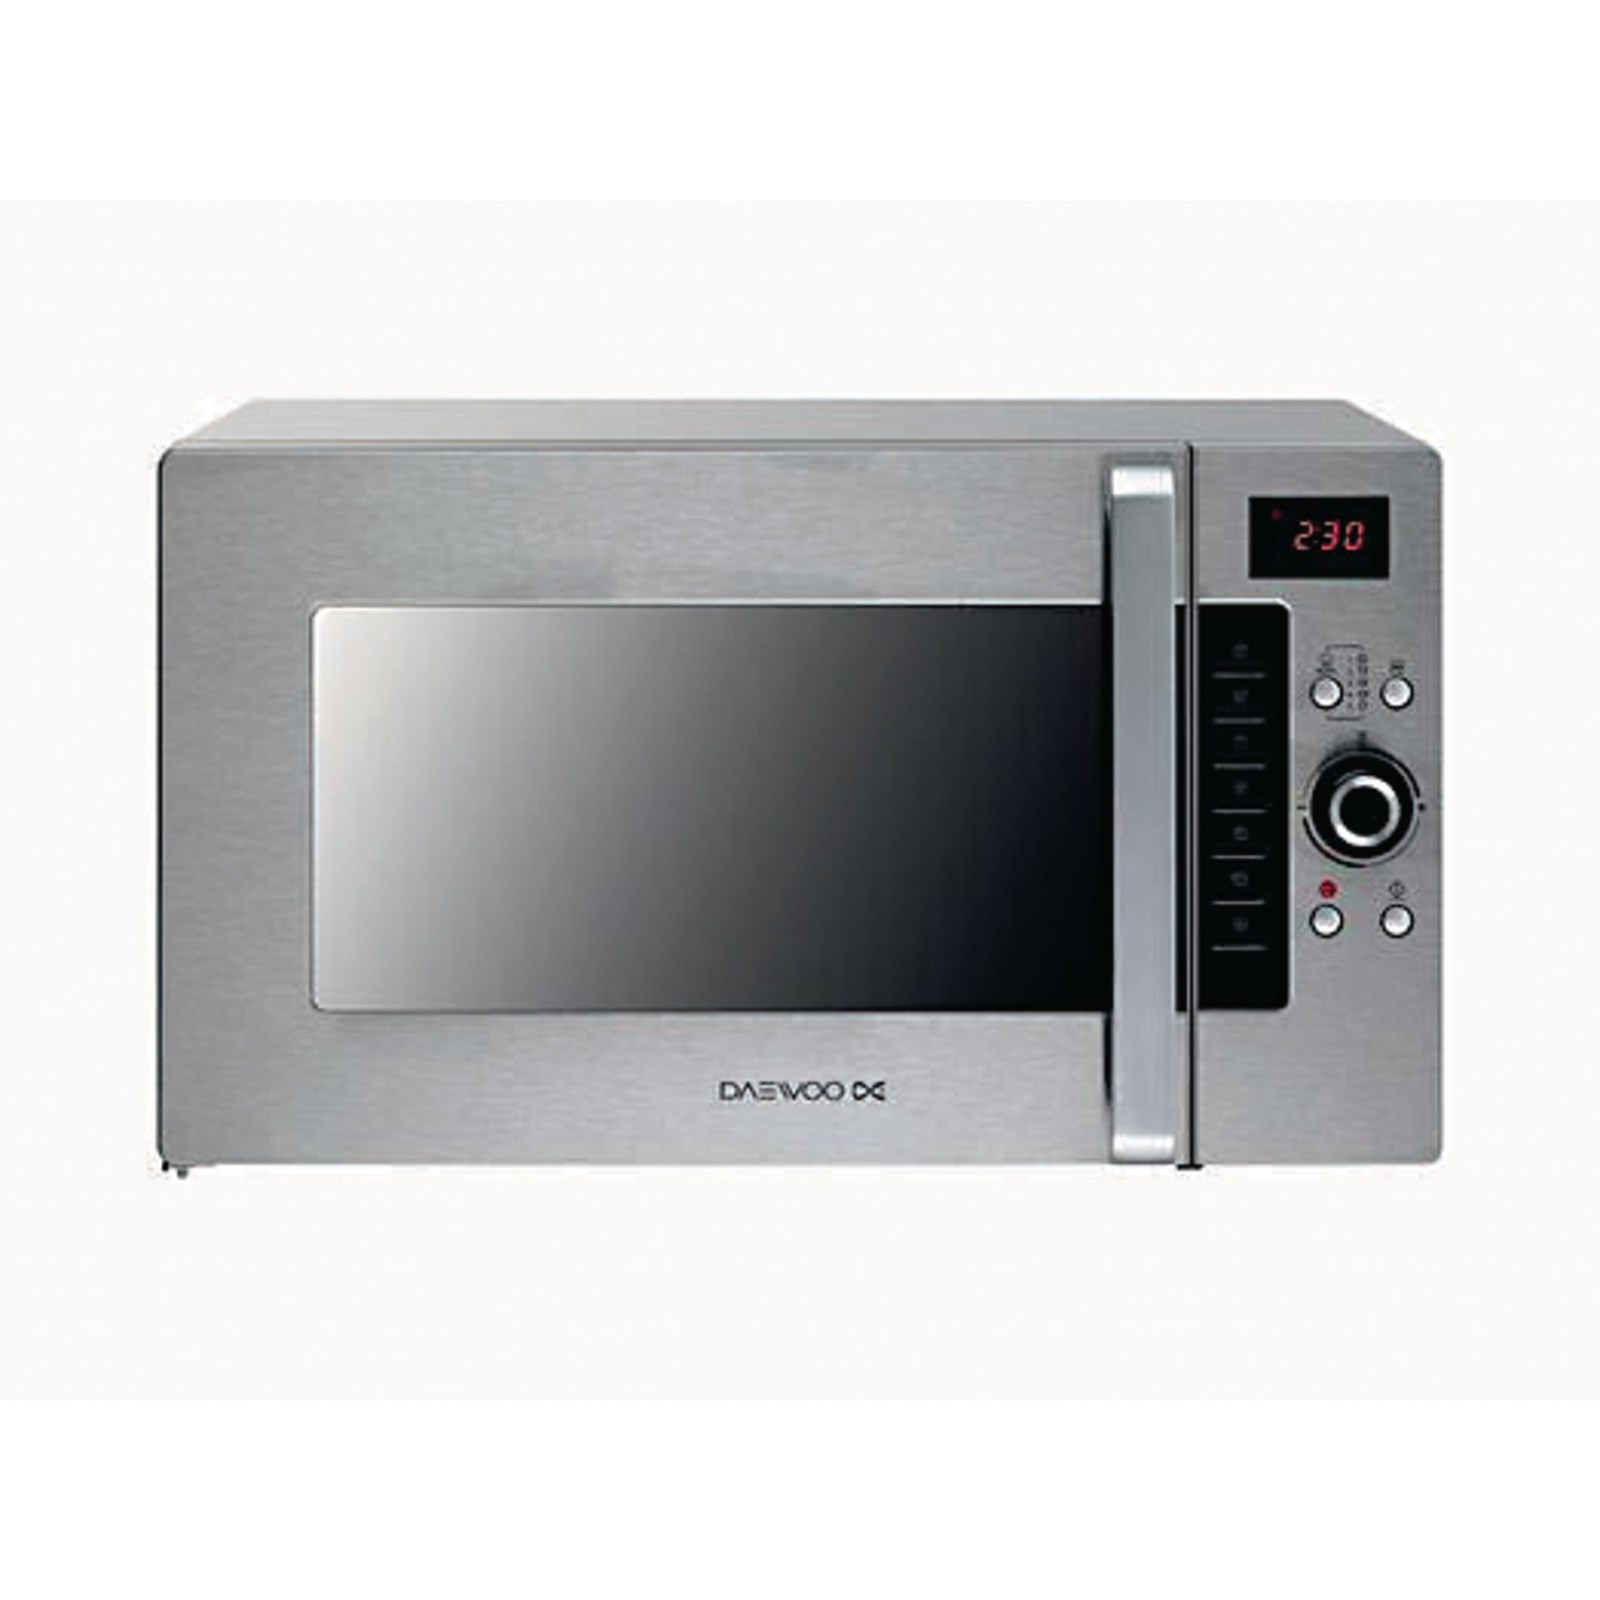 Daewoo Convection/Microwave Oven | GLS Educational Supplies